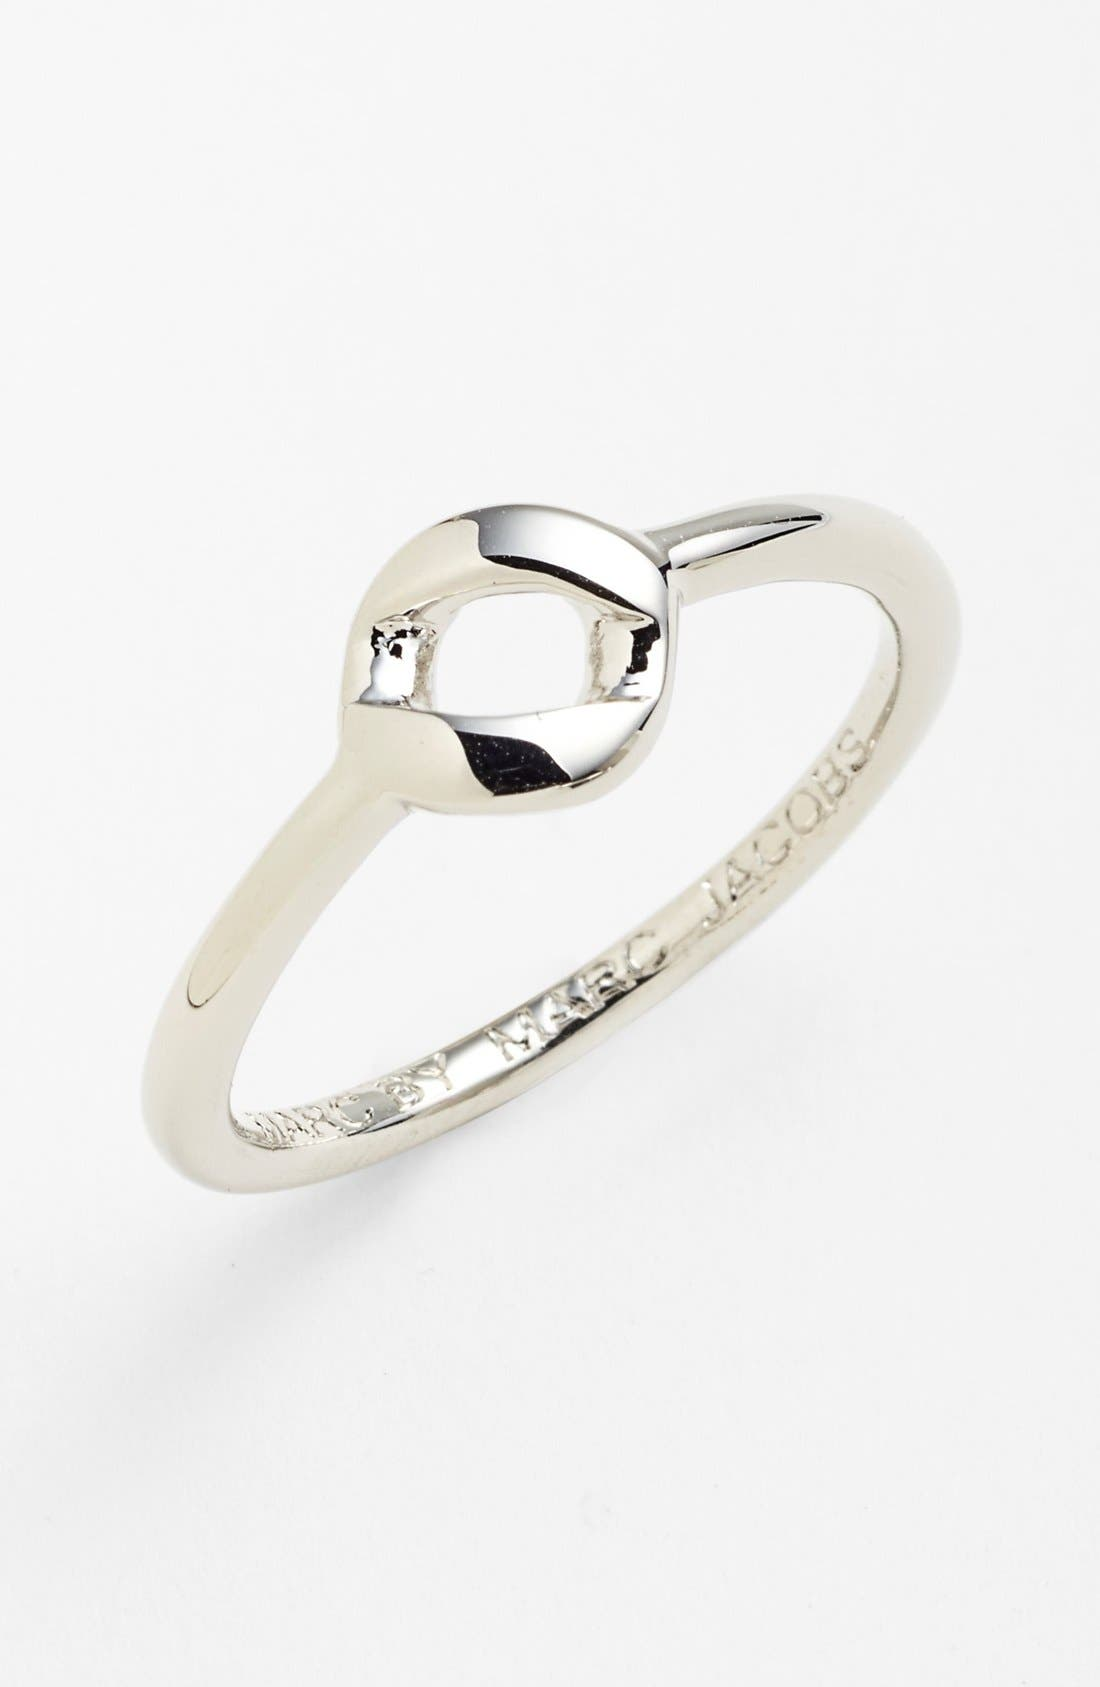 Main Image - MARC BY MARC JACOBS 'Katie' Small Open Ring